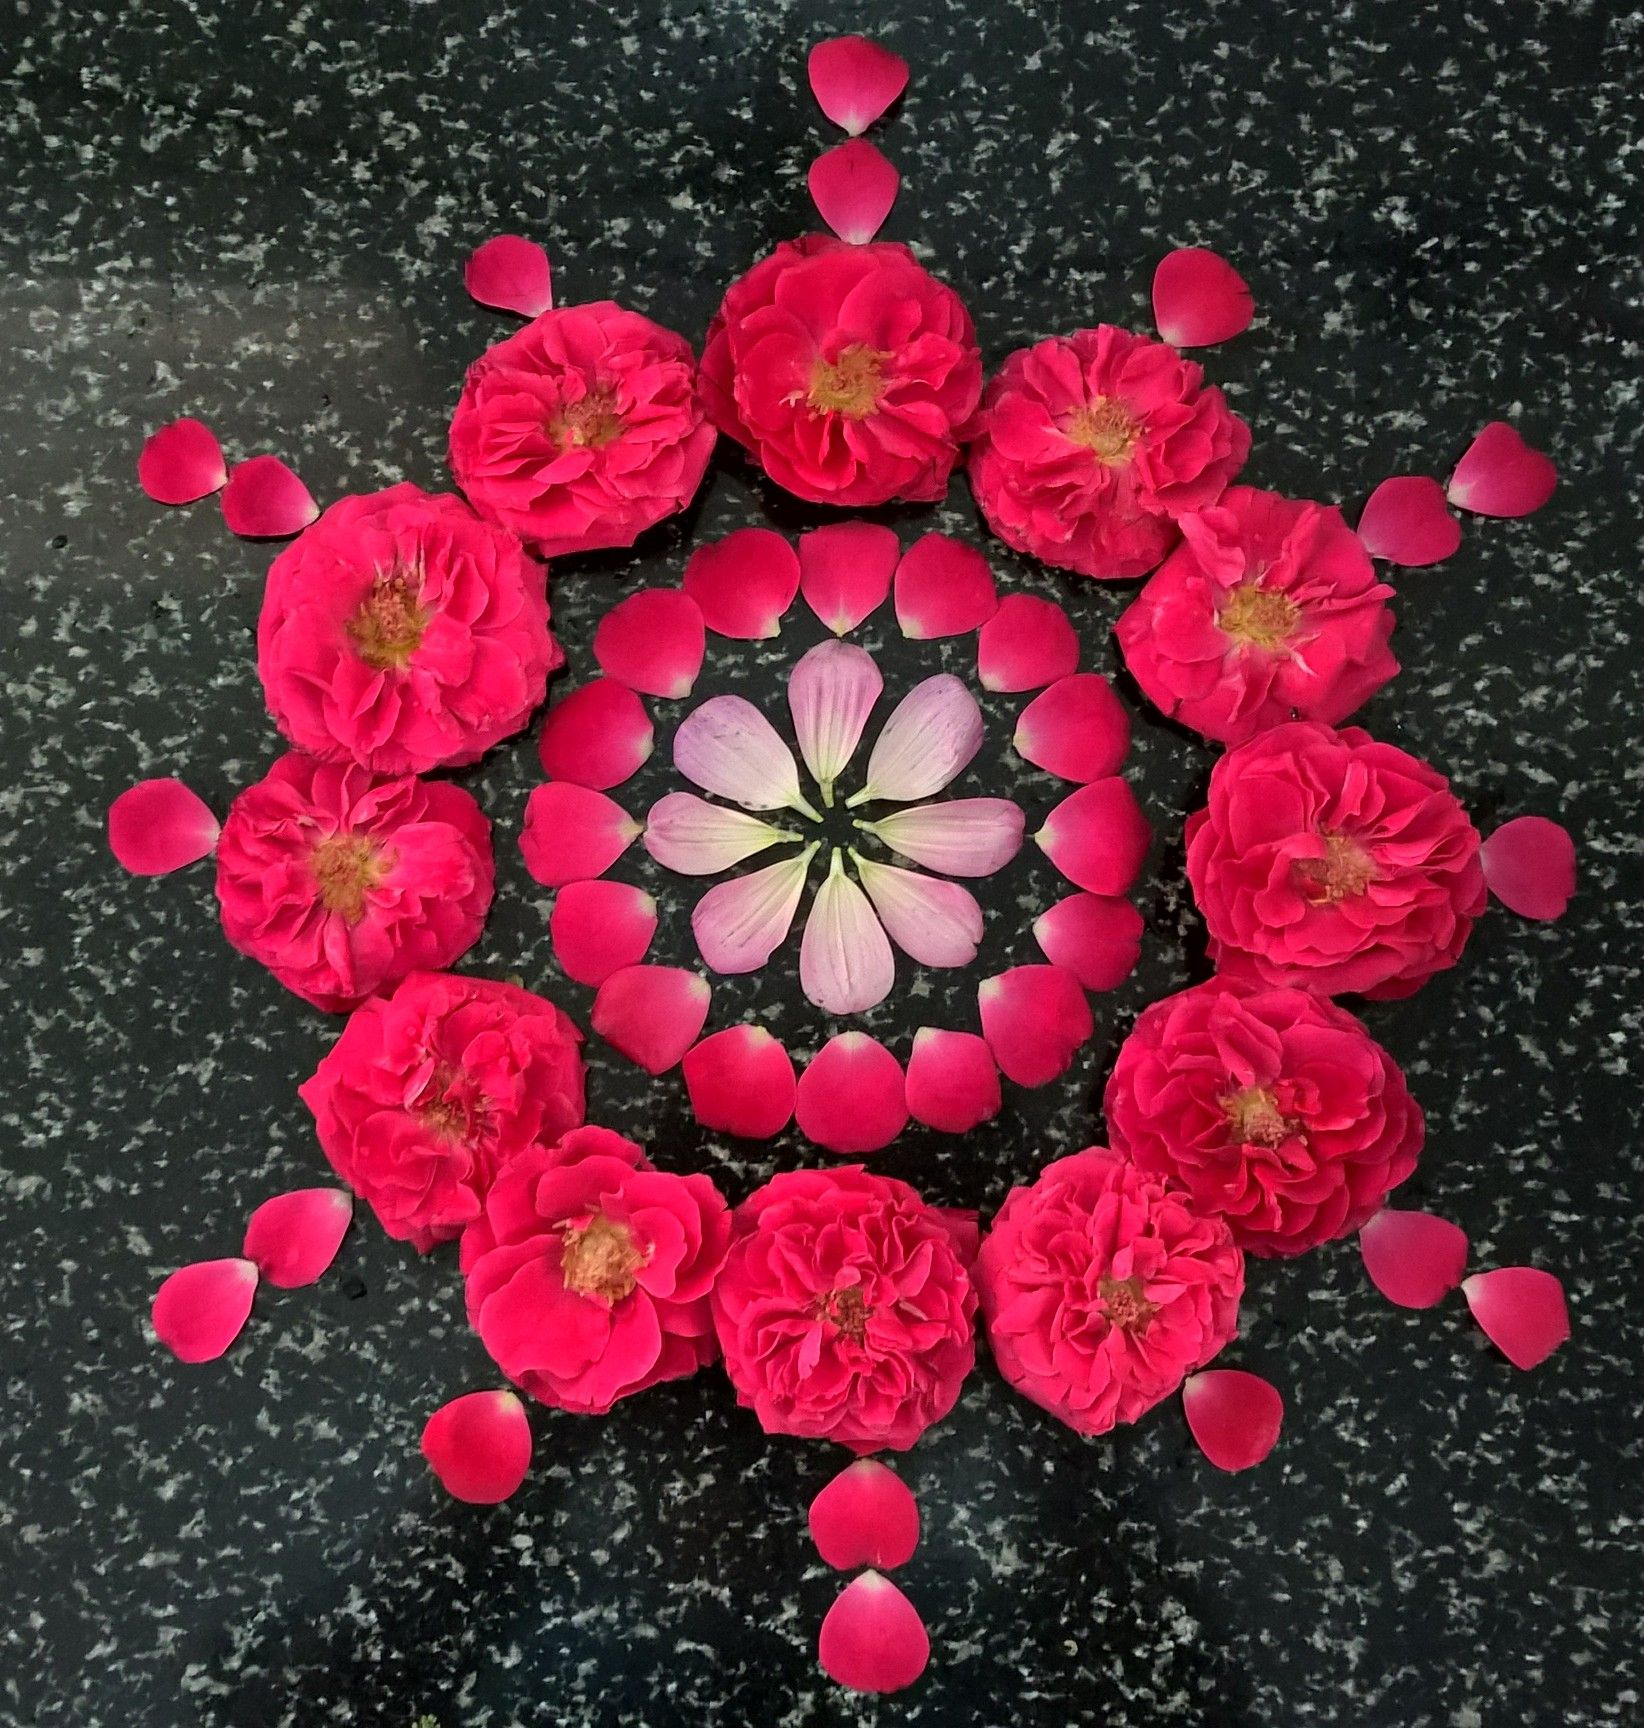 Rose Petals N Flowers Rangoli Designs Flower Flower Rangoli Images Flower Rangoli